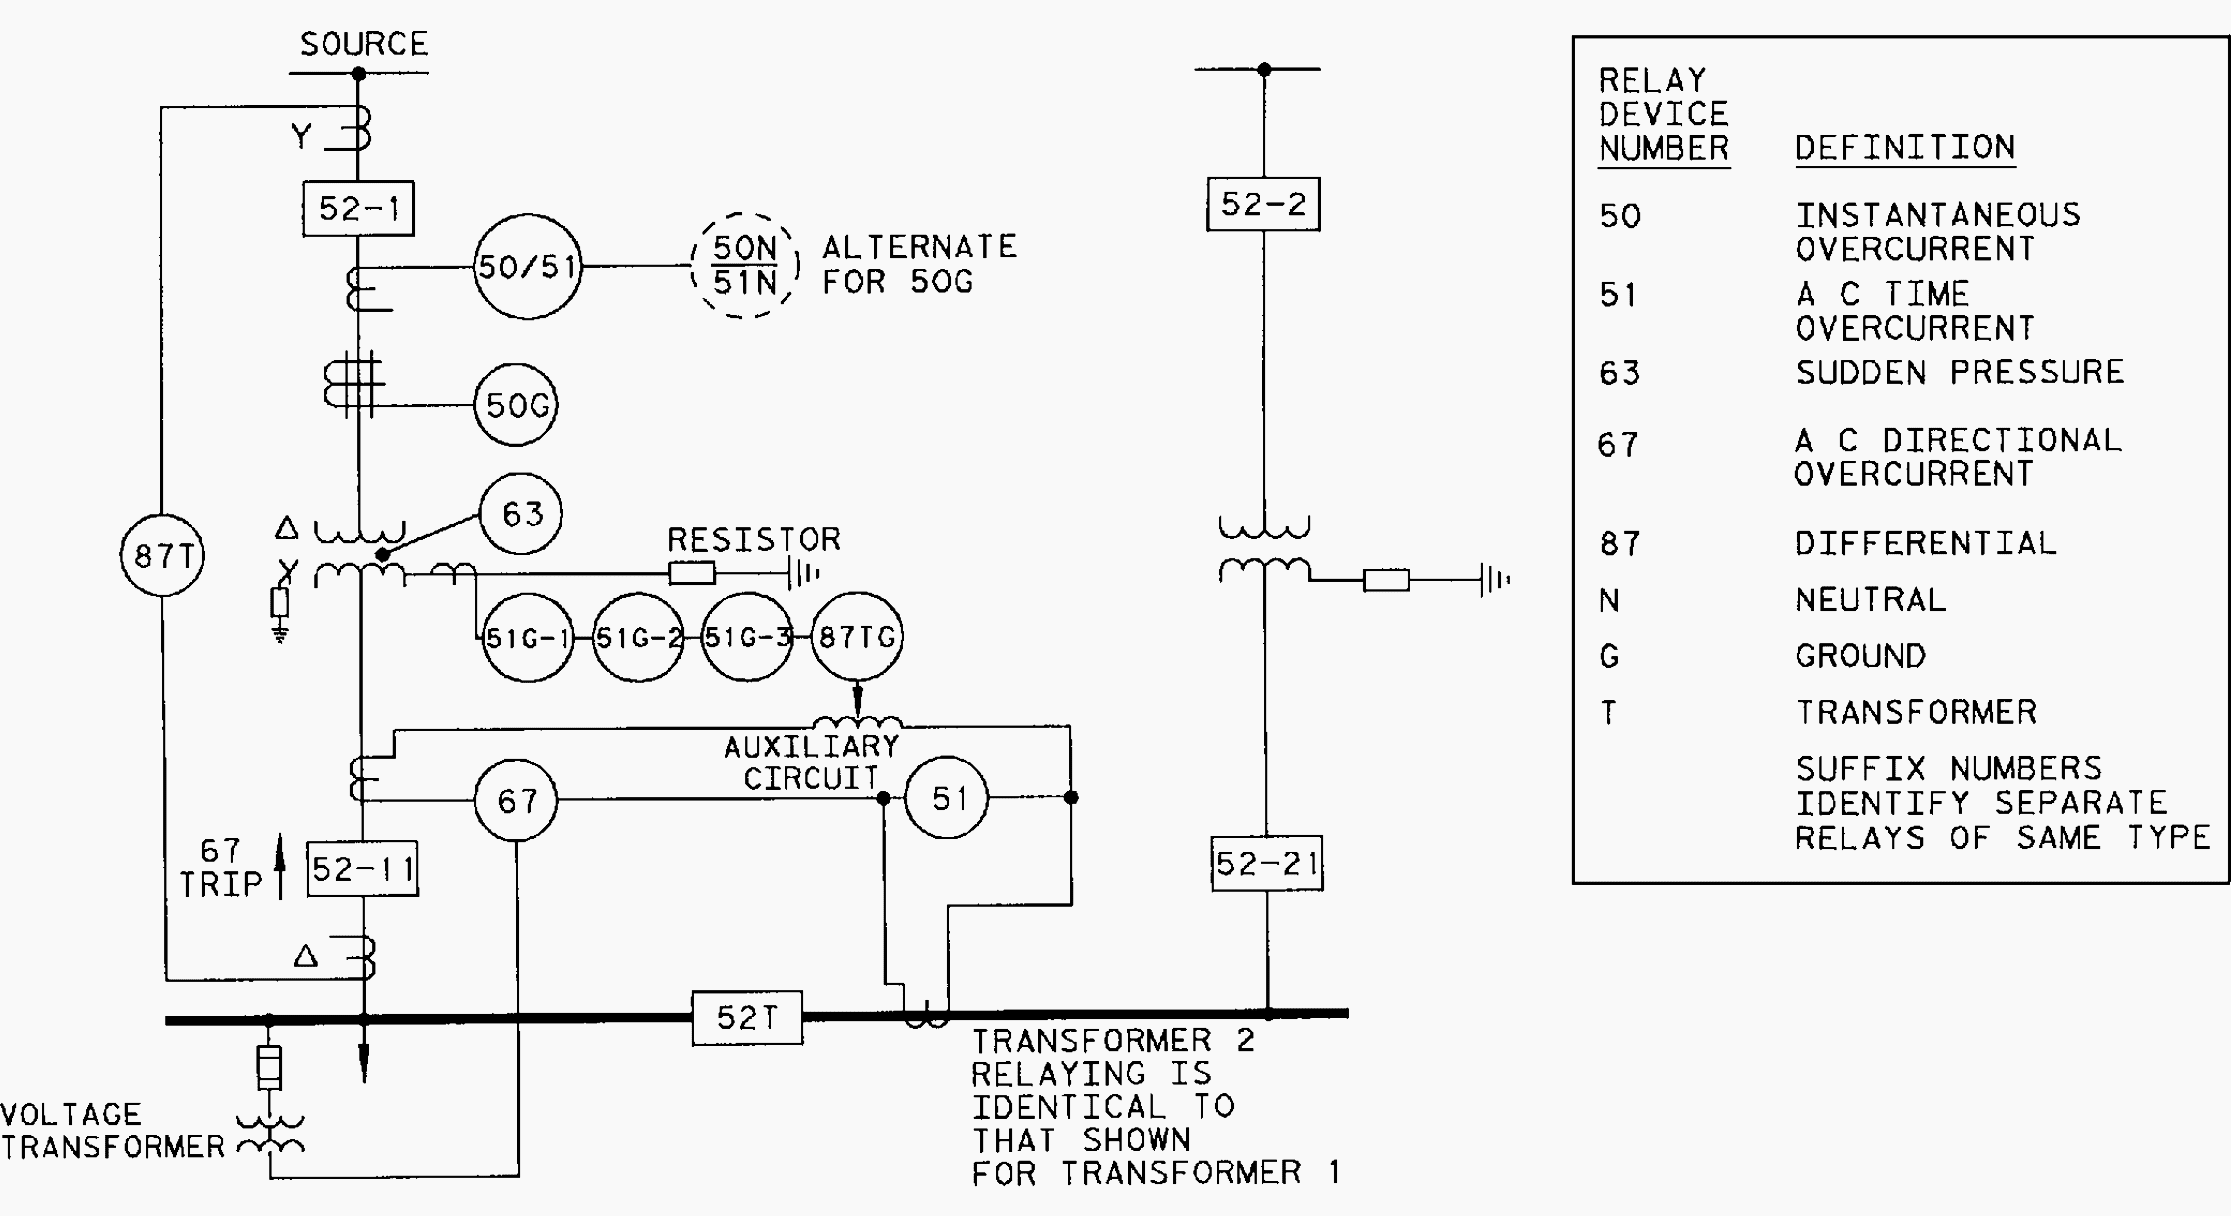 Paralleled transformer protection with primary breaker (no load or metering circuits shown)